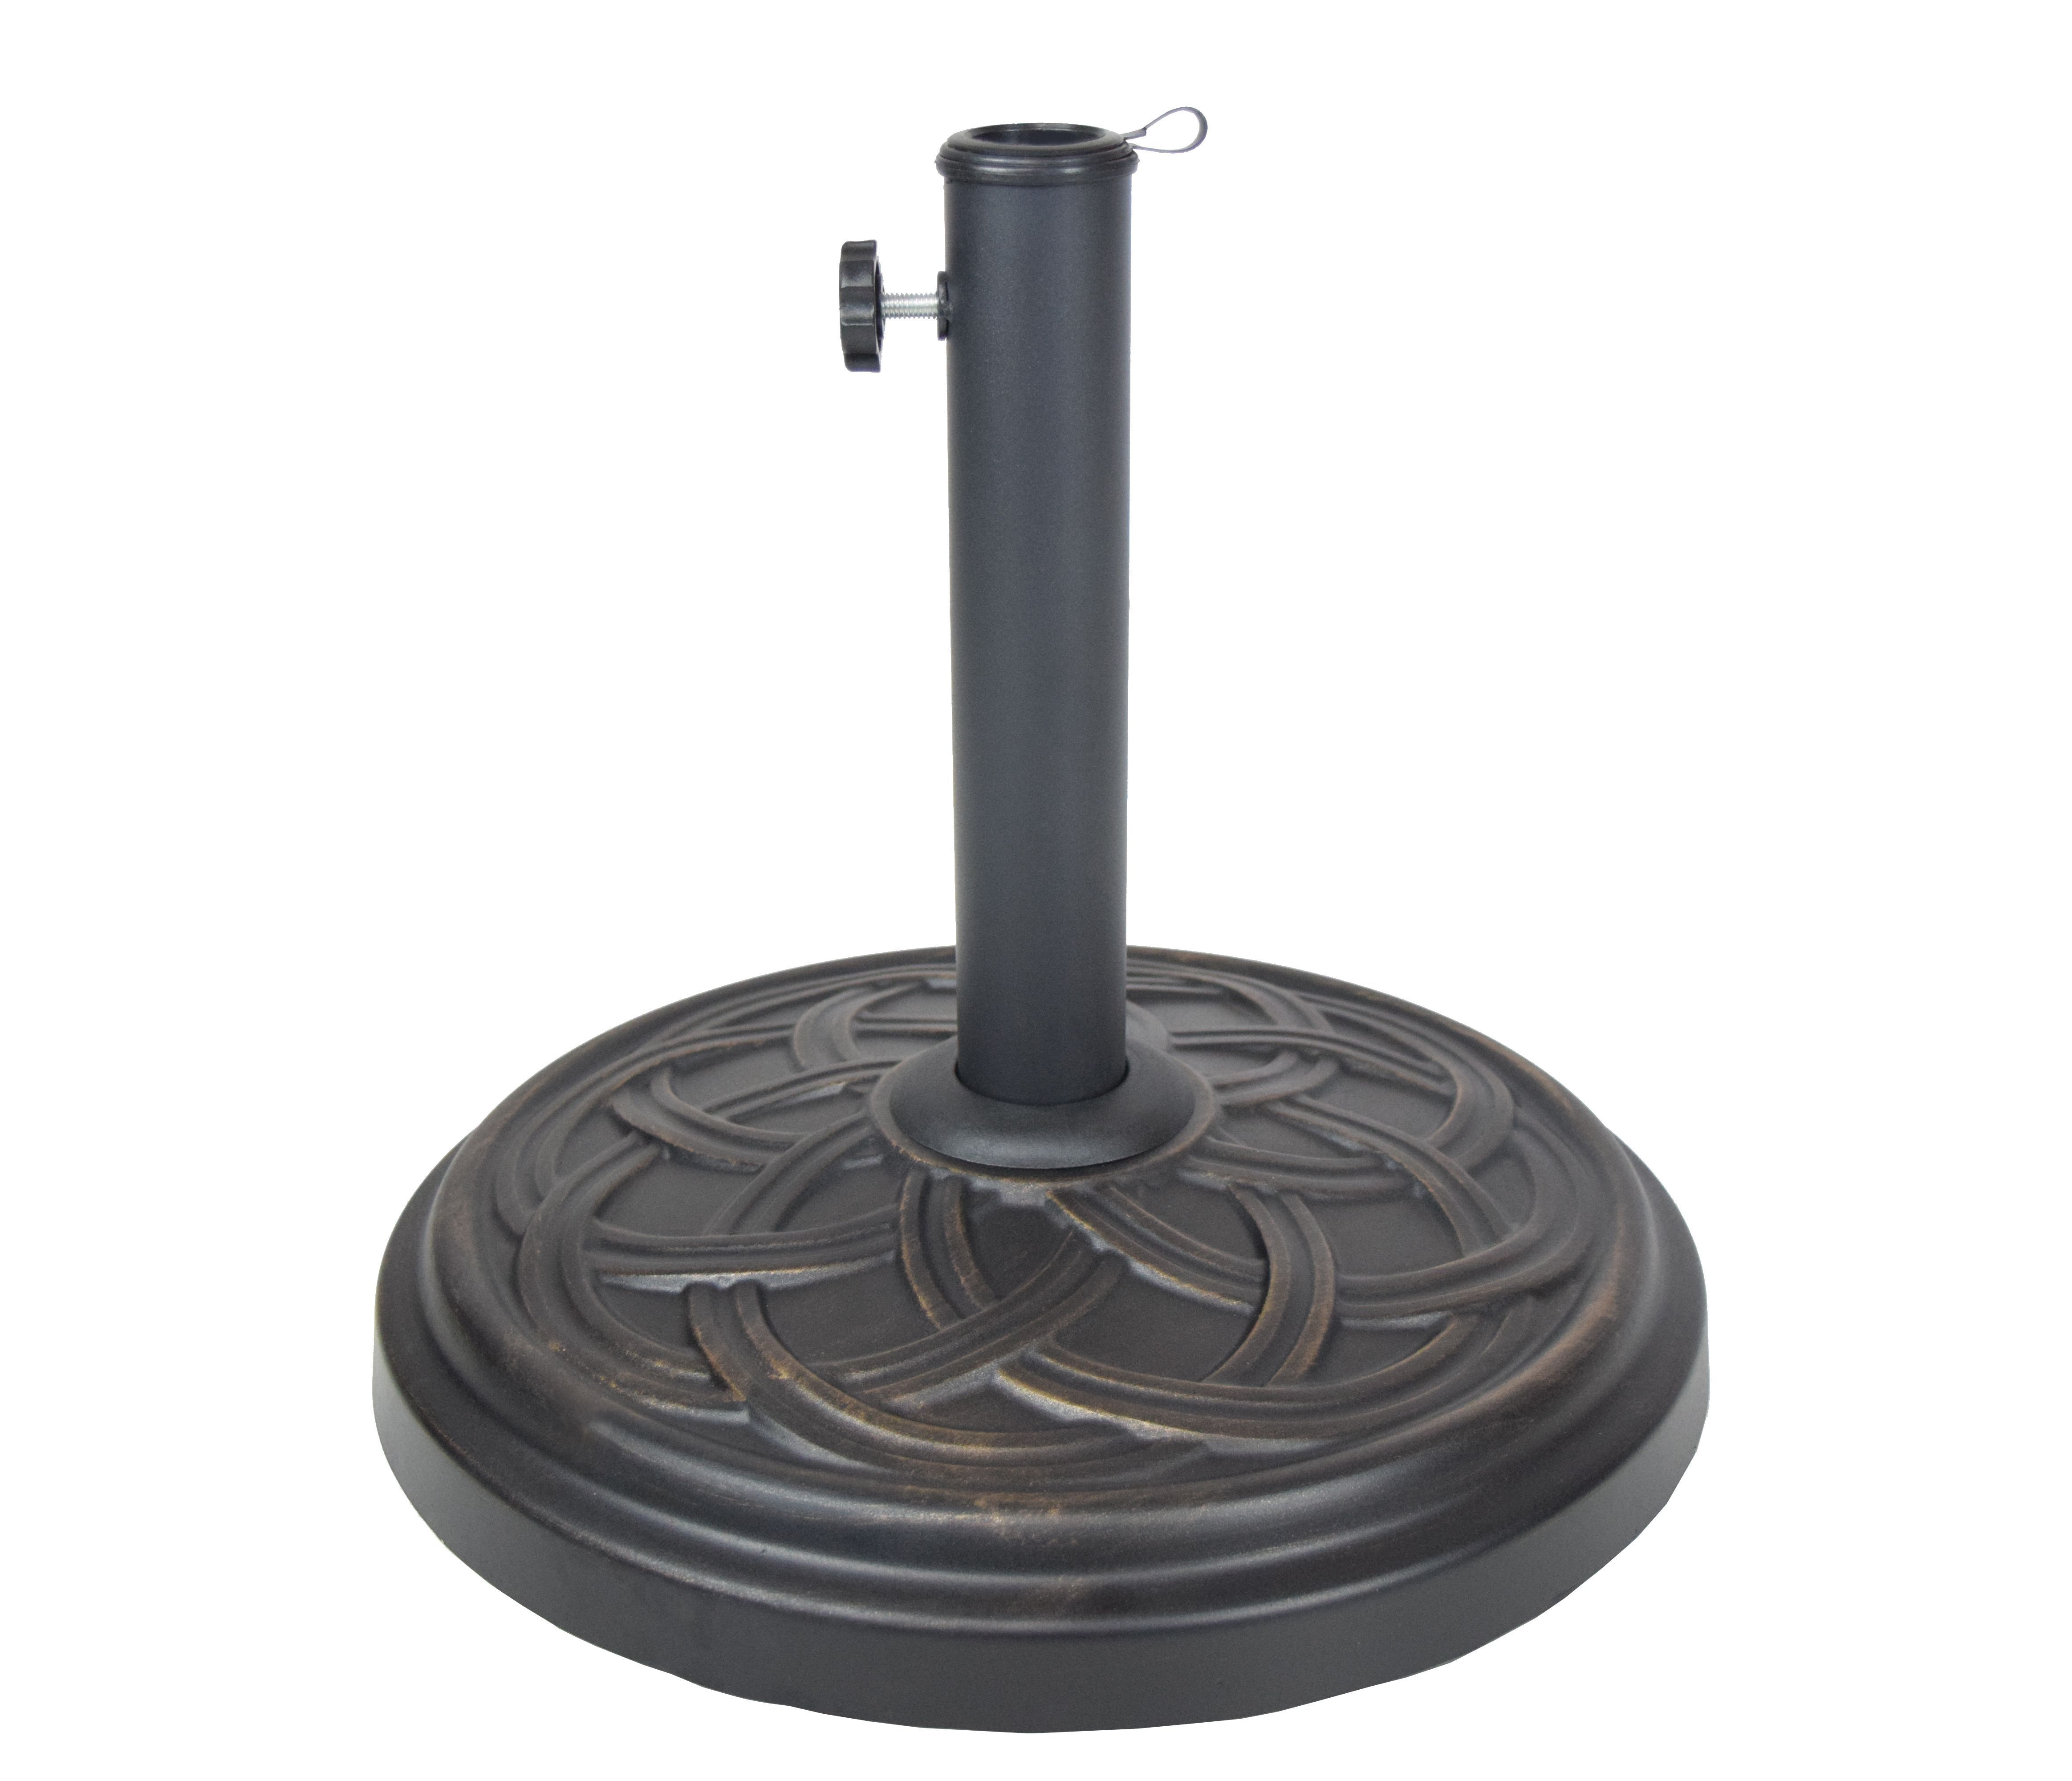 "15.7"" Antique Bronze Decorative Round Cast Concrete Patio Umbrella Stand #patioumbrellastand 15.7"" Antique Bronze Decorative Round Cast Concrete Patio Umbrella Stand #patioumbrellastand 15.7"" Antique Bronze Decorative Round Cast Concrete Patio Umbrella Stand #patioumbrellastand 15.7"" Antique Bronze Decorative Round Cast Concrete Patio Umbrella Stand #patioumbrellastand"